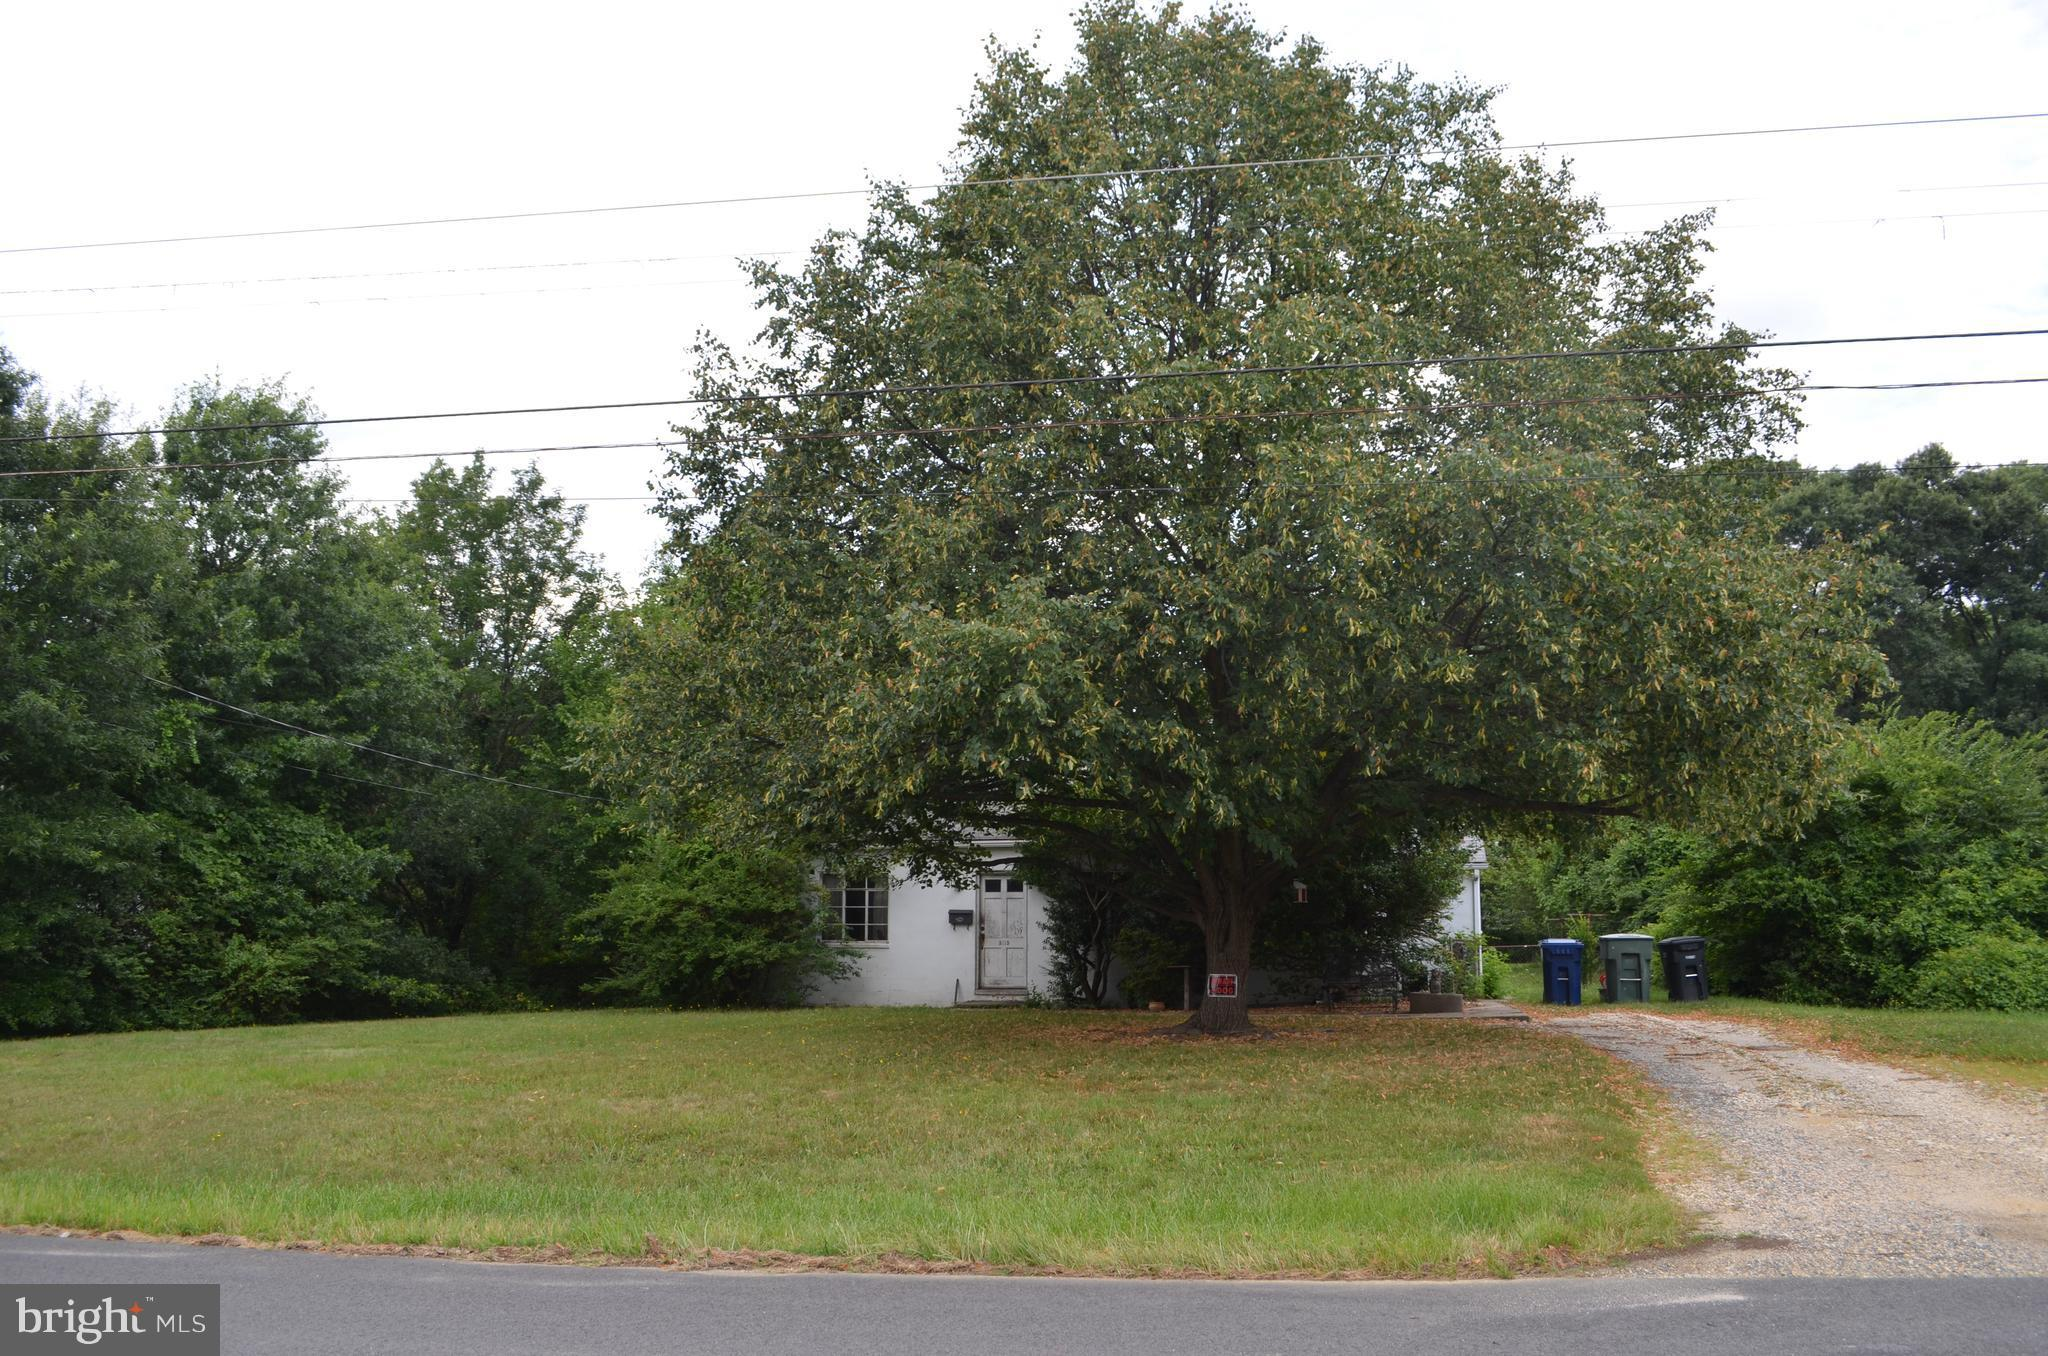 Value is in the LAND. Rare, exceptional opportunity and potential on 0.52 acre LOT in Alexandria! Located inside the Beltway, off Seminary Rd,1/2 mile fr I-395, quick access to Rte 7, mins to DC, Arlington, Falls Church. Bring your builder & build your dream mansion. House on lot AS-IS. WATER & GAS avail.